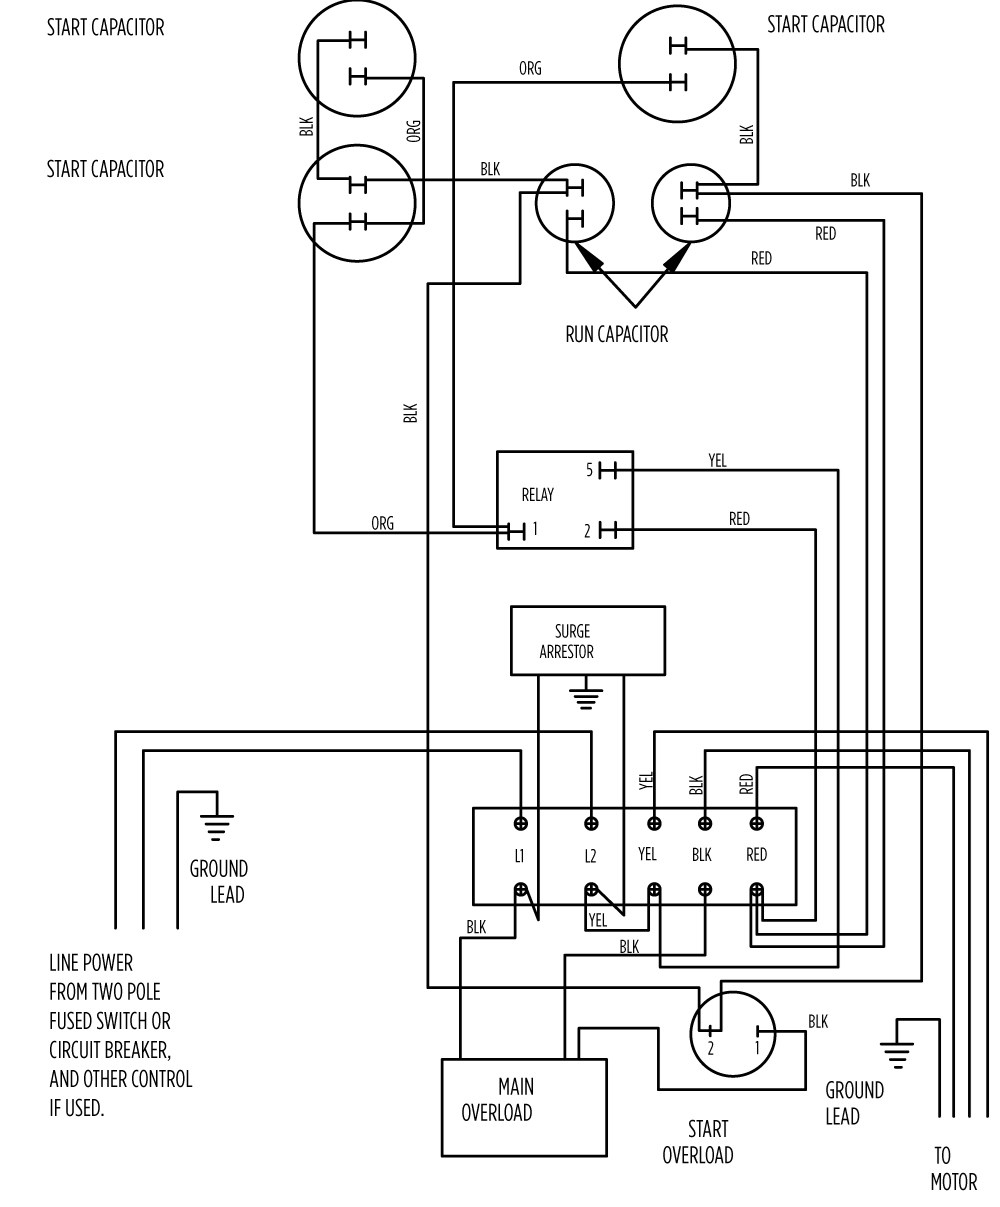 small resolution of motor wiring diagrams likewise on 10 hp baldor motor capacitor baldor motor wiring diagrams reversible 10 hp baldor motor wiring diagram